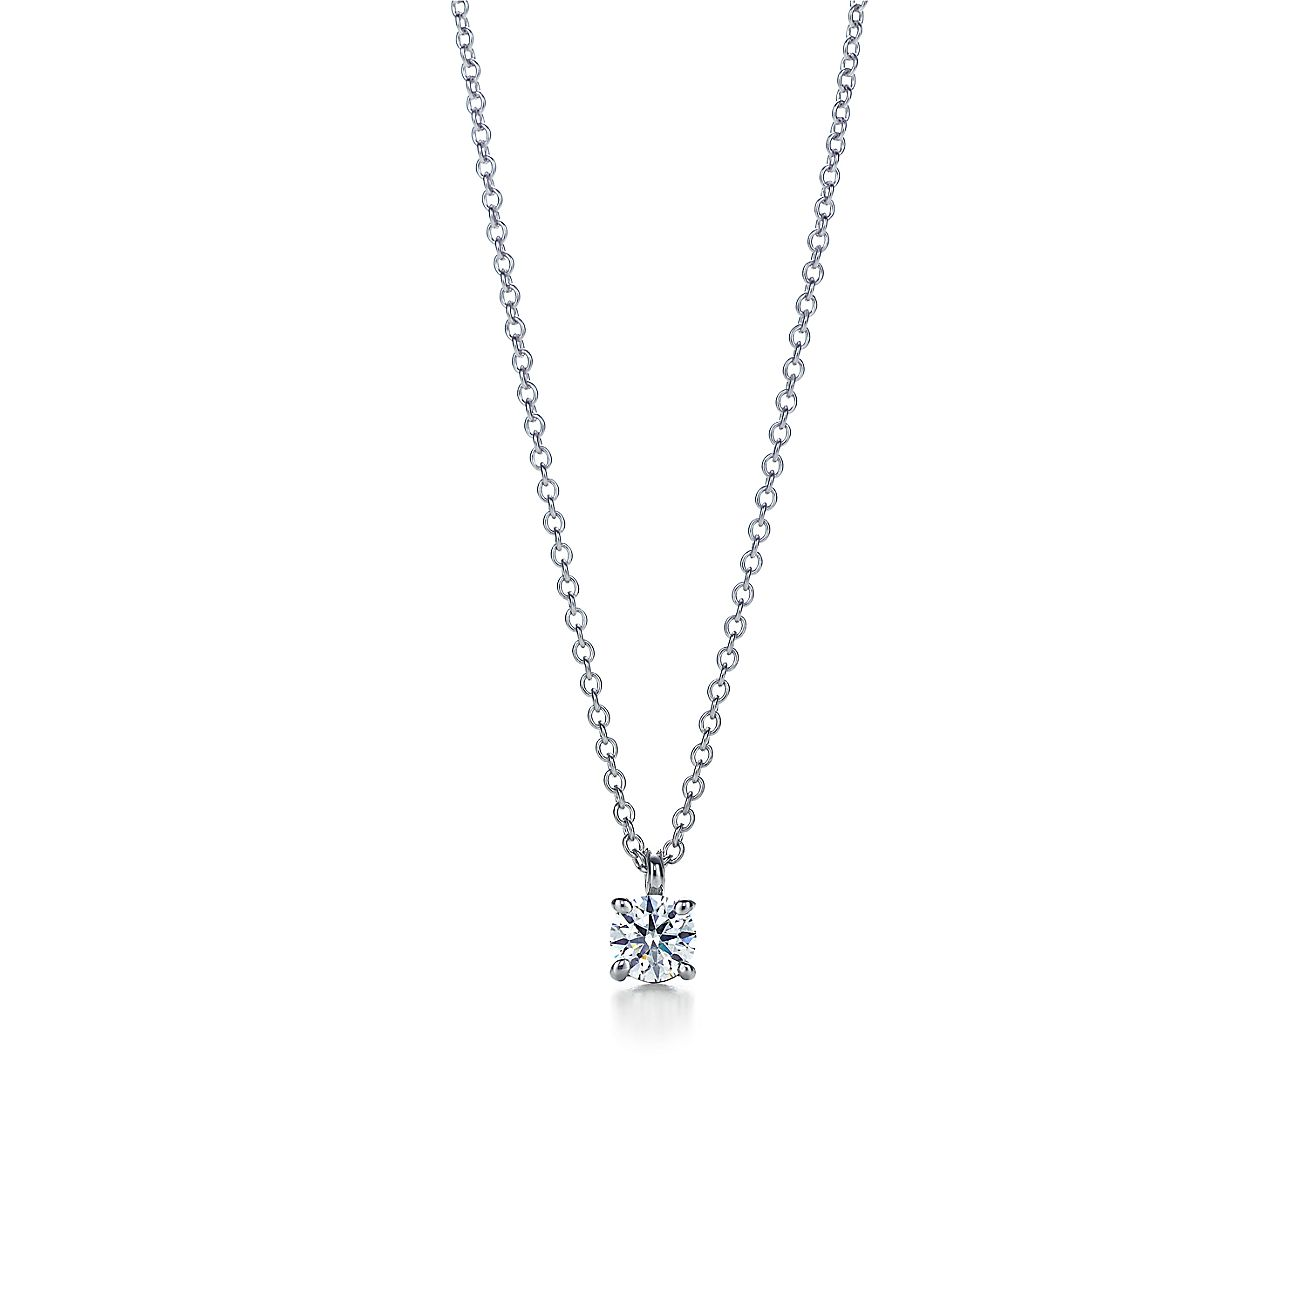 sollp jewelry necklace npdia solitaire designs diamond necklaces